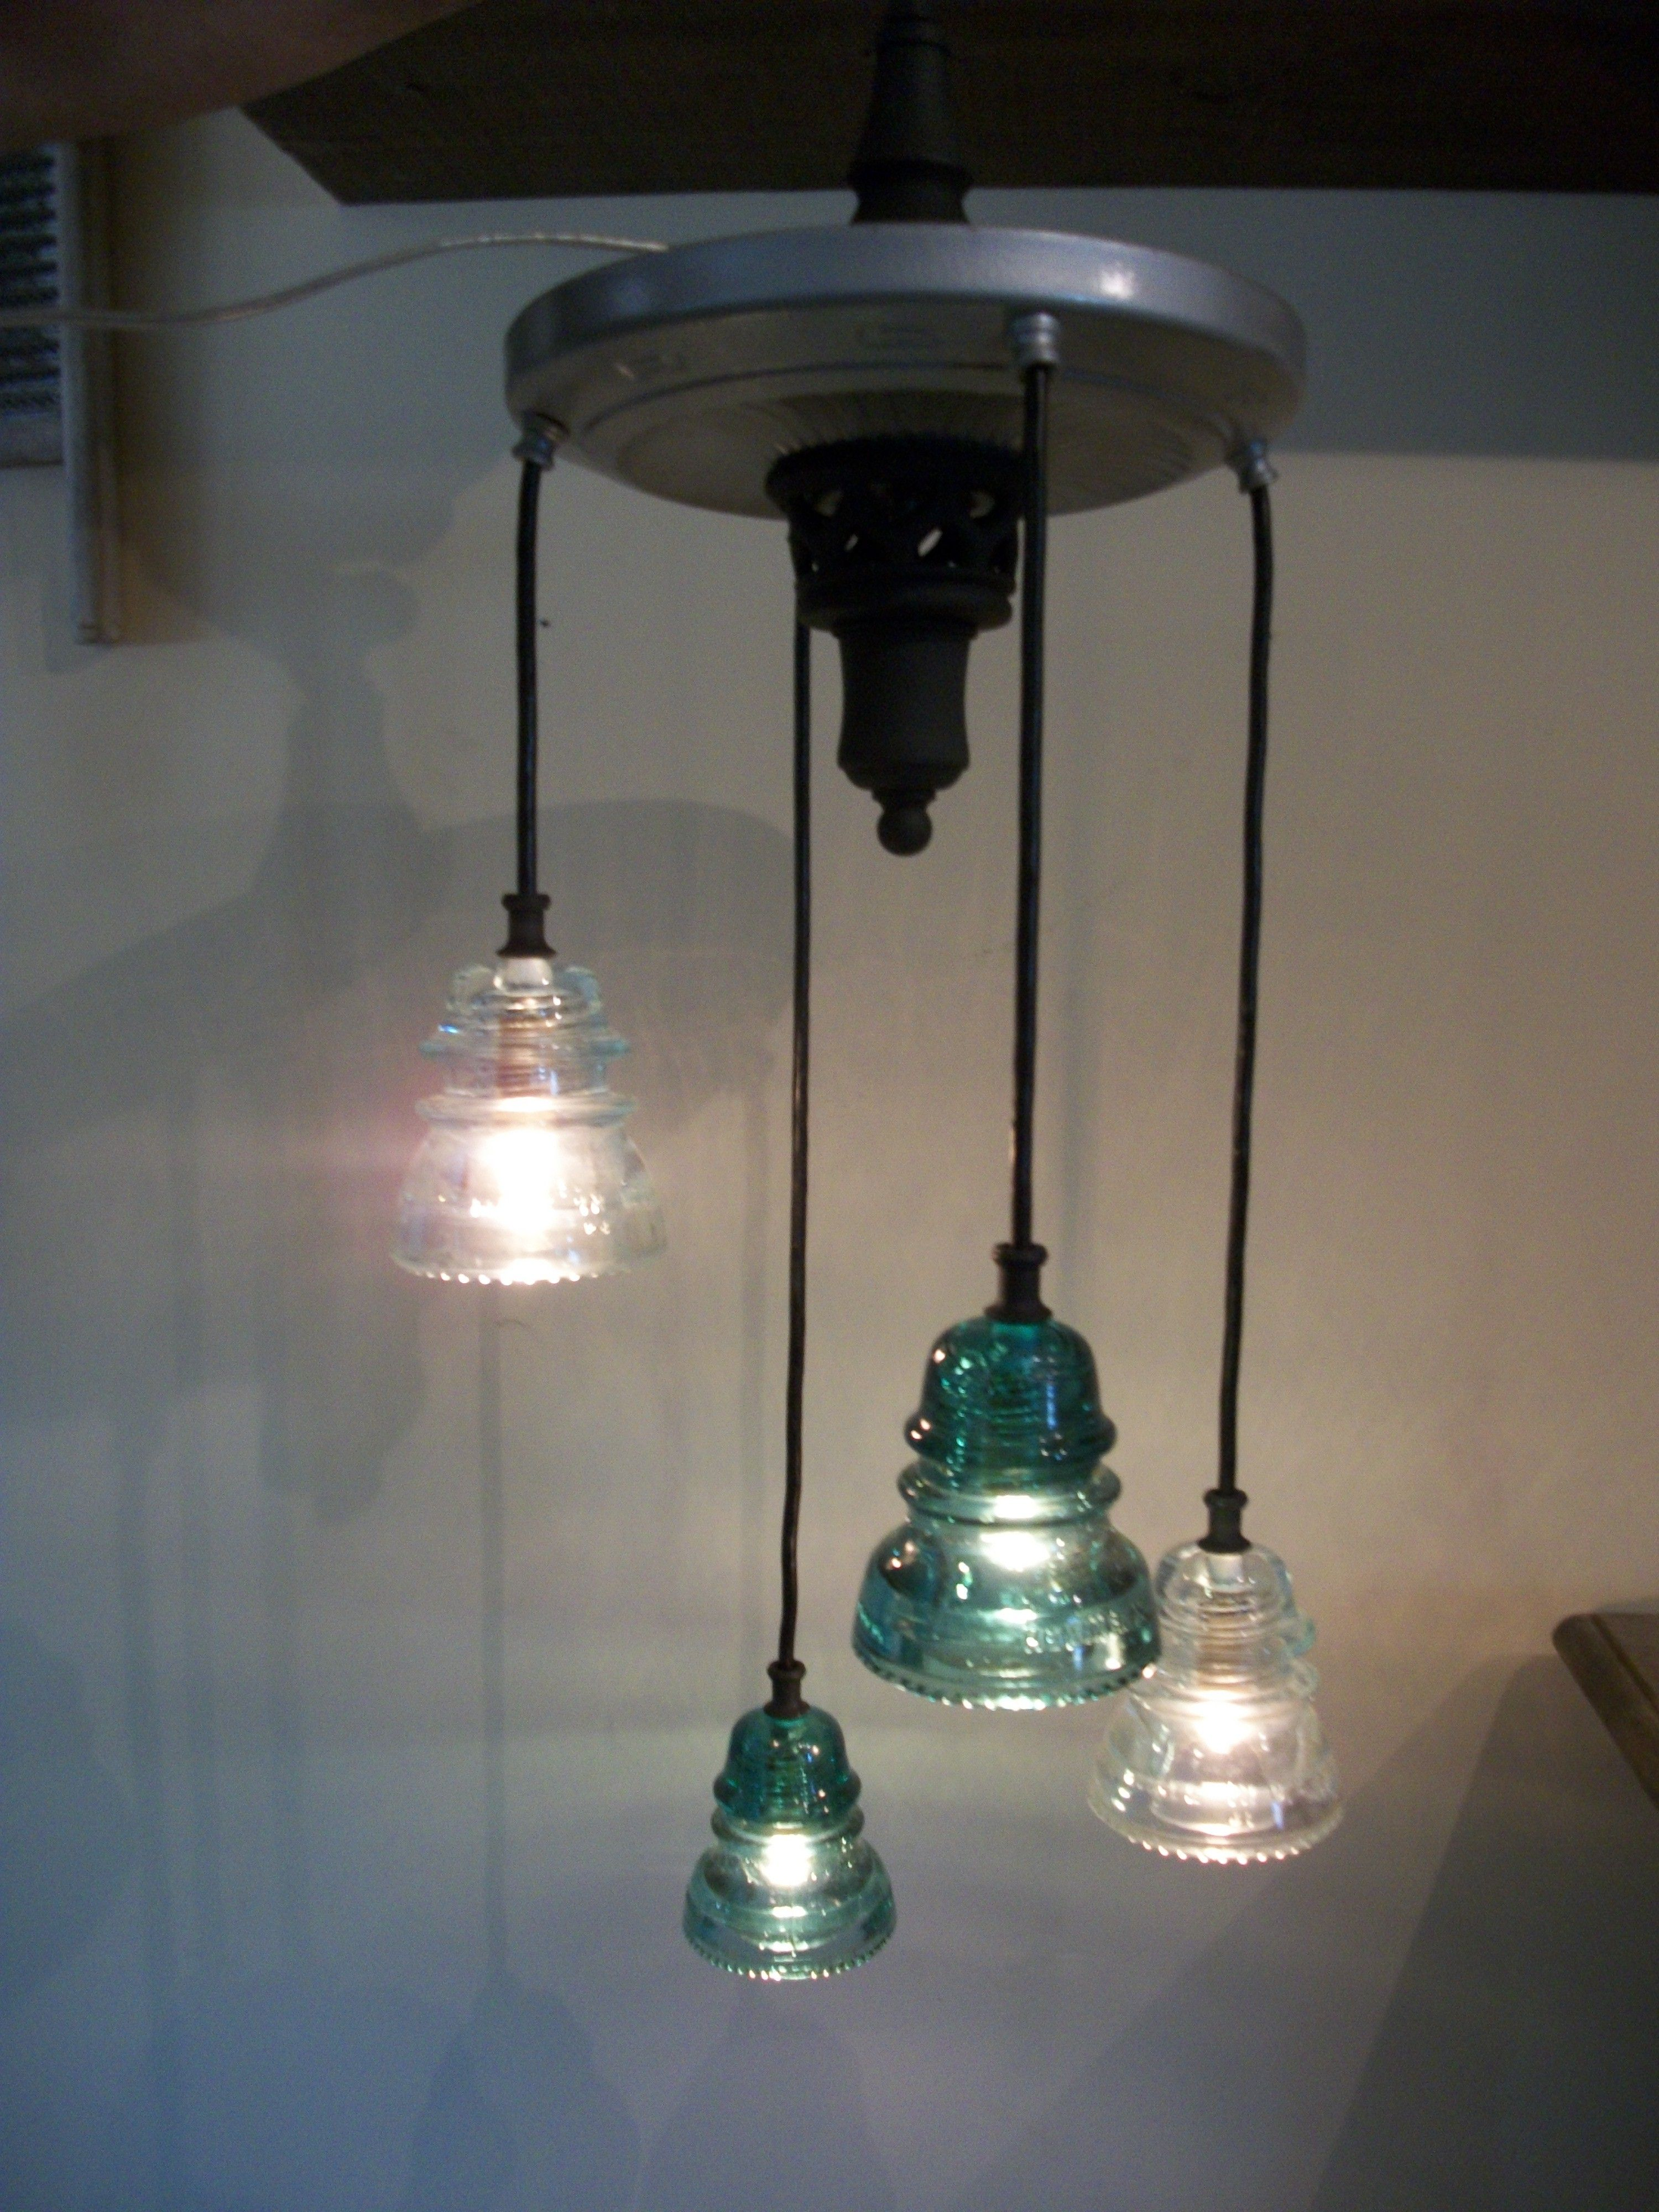 Glass insulator chandelier antique glass from the telegraph poles glass insulator chandelier antique glass from the telegraph poles for the railroad enthusiasts mozeypictures Image collections